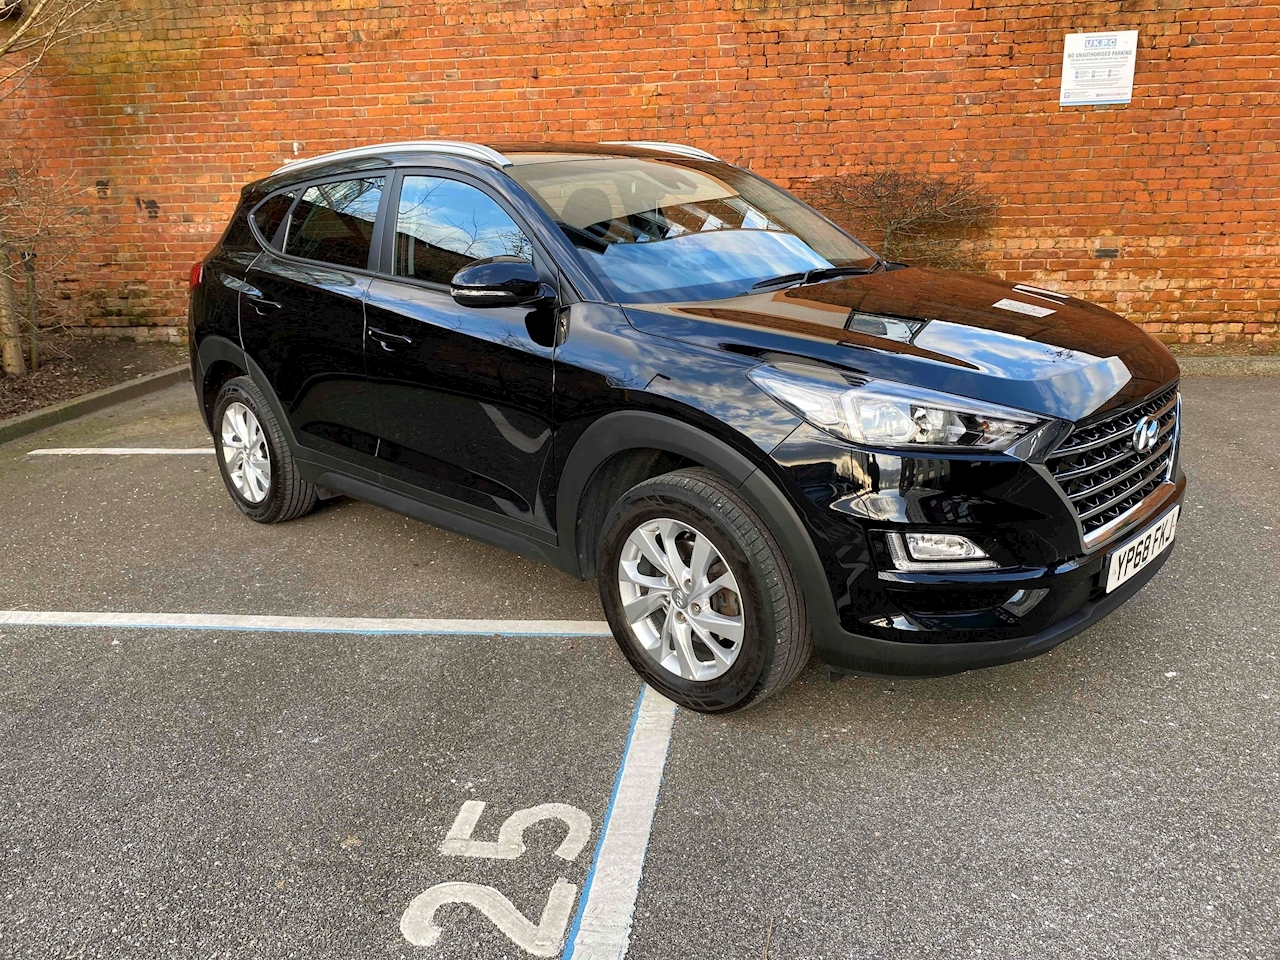 Tucson Gdi Se Nav 1.6 5dr Estate Manual Petrol